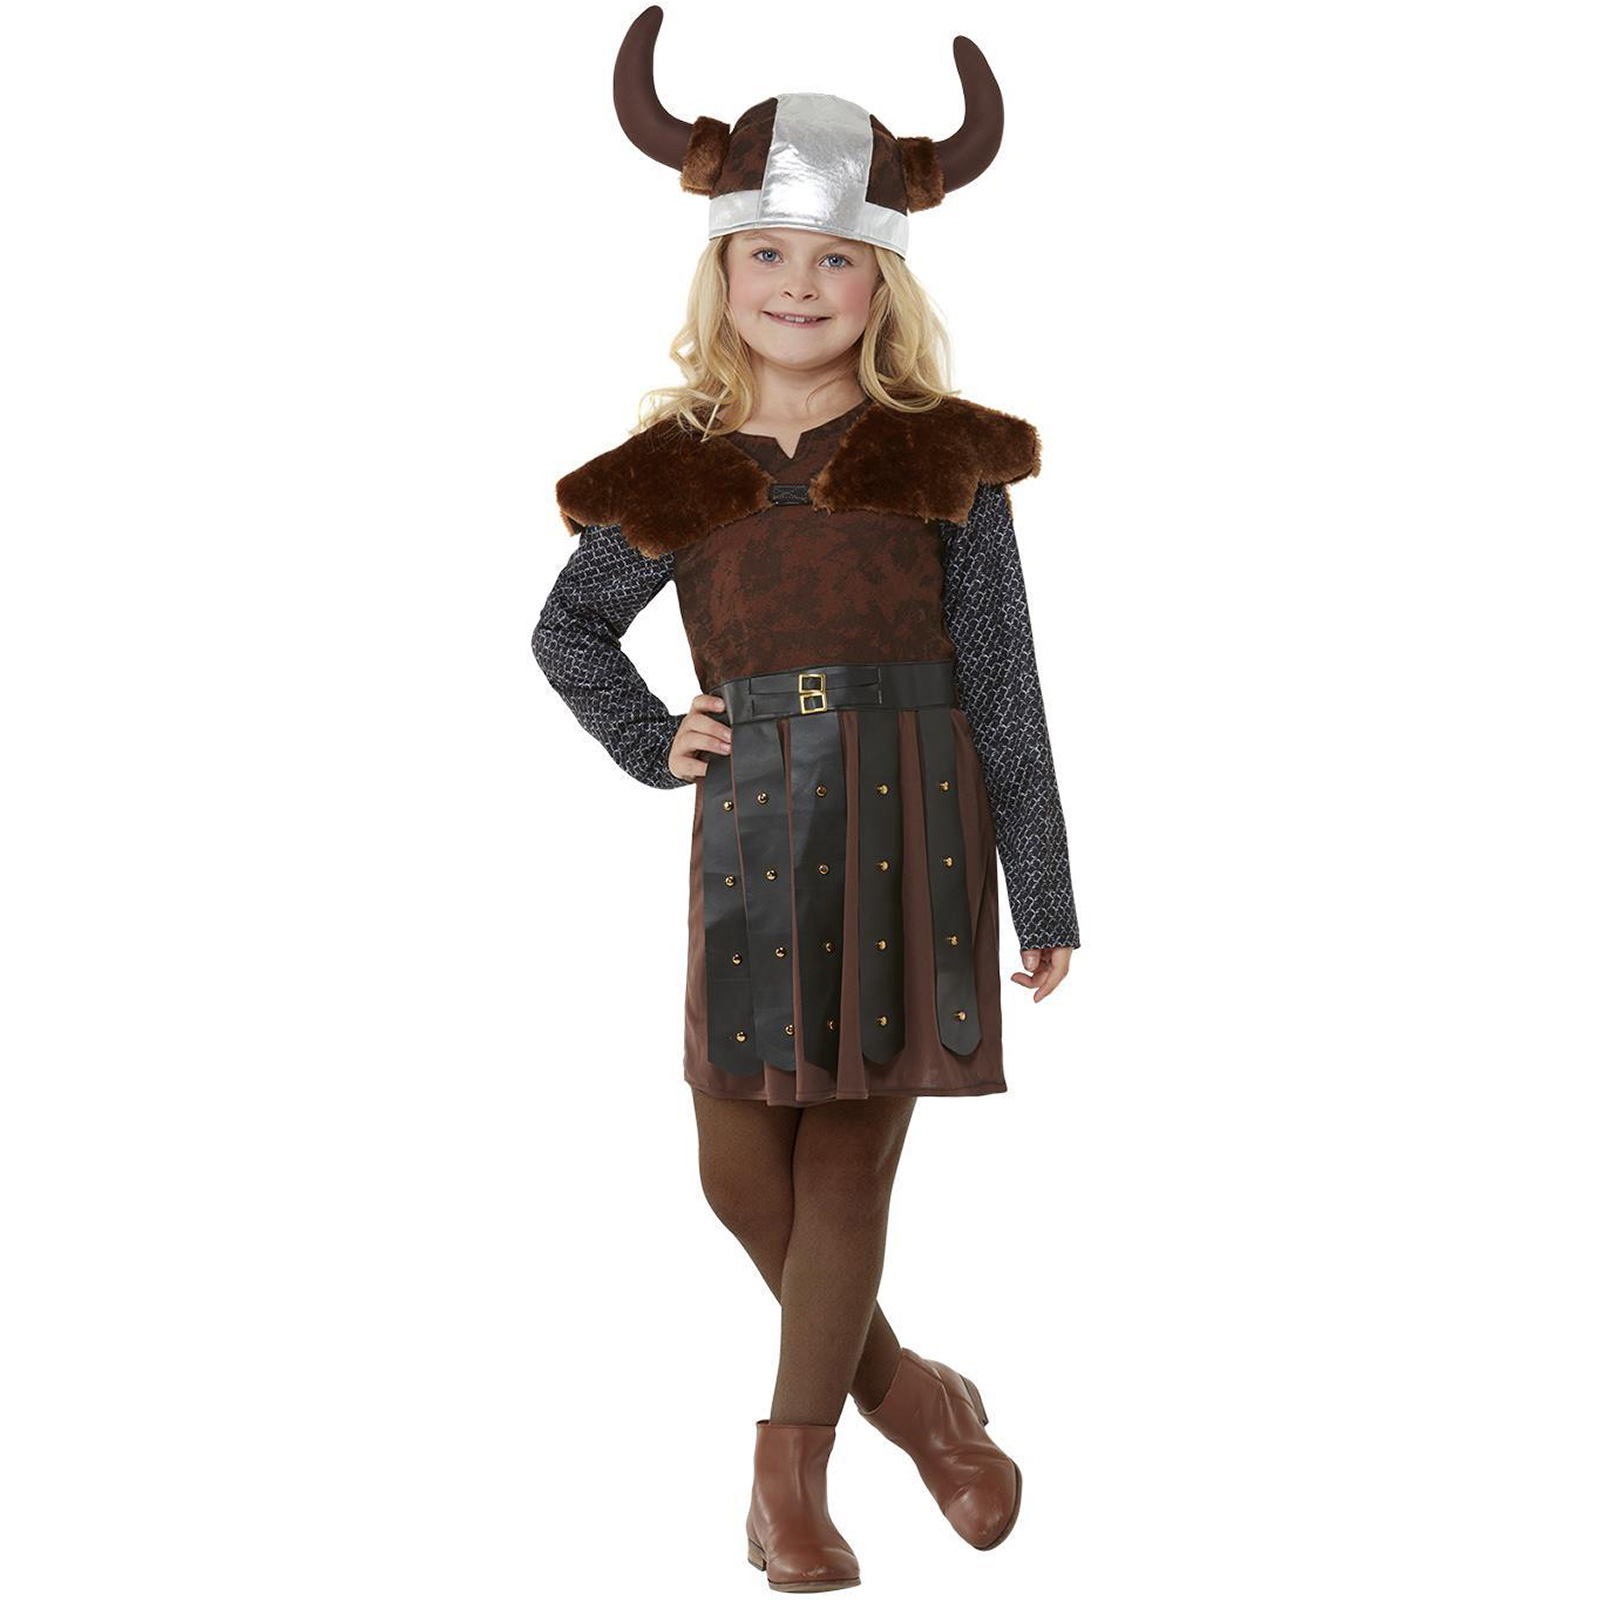 Boys Kids Viking Costume Warrior Saxon Fancy Dress Up Outfit New Age 3-12